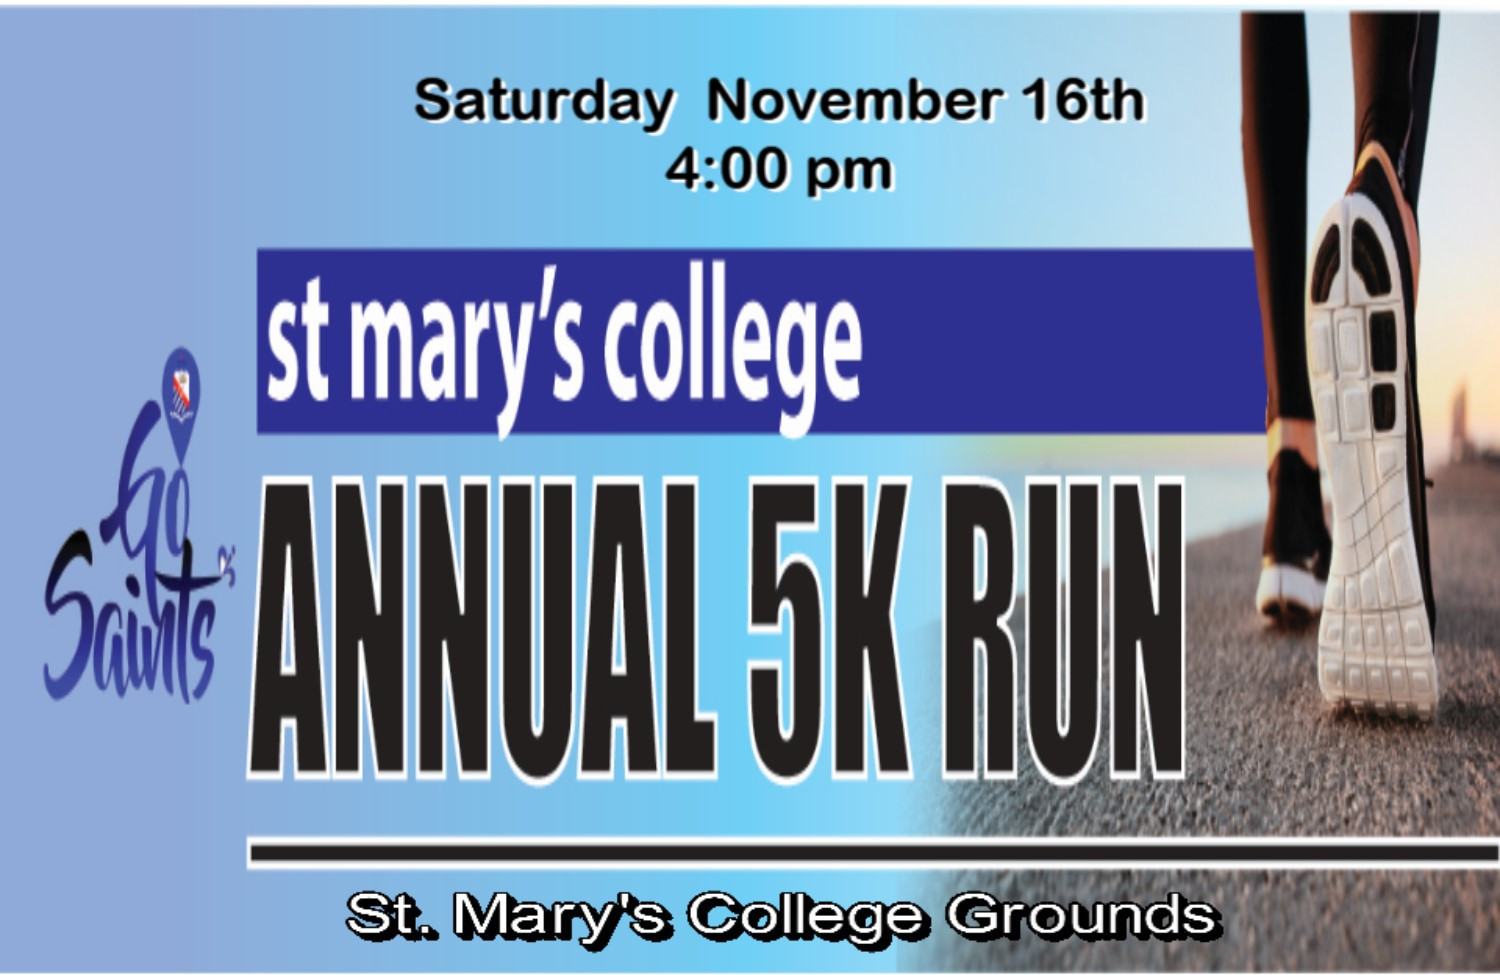 St. Mary's College 5k RESULTS